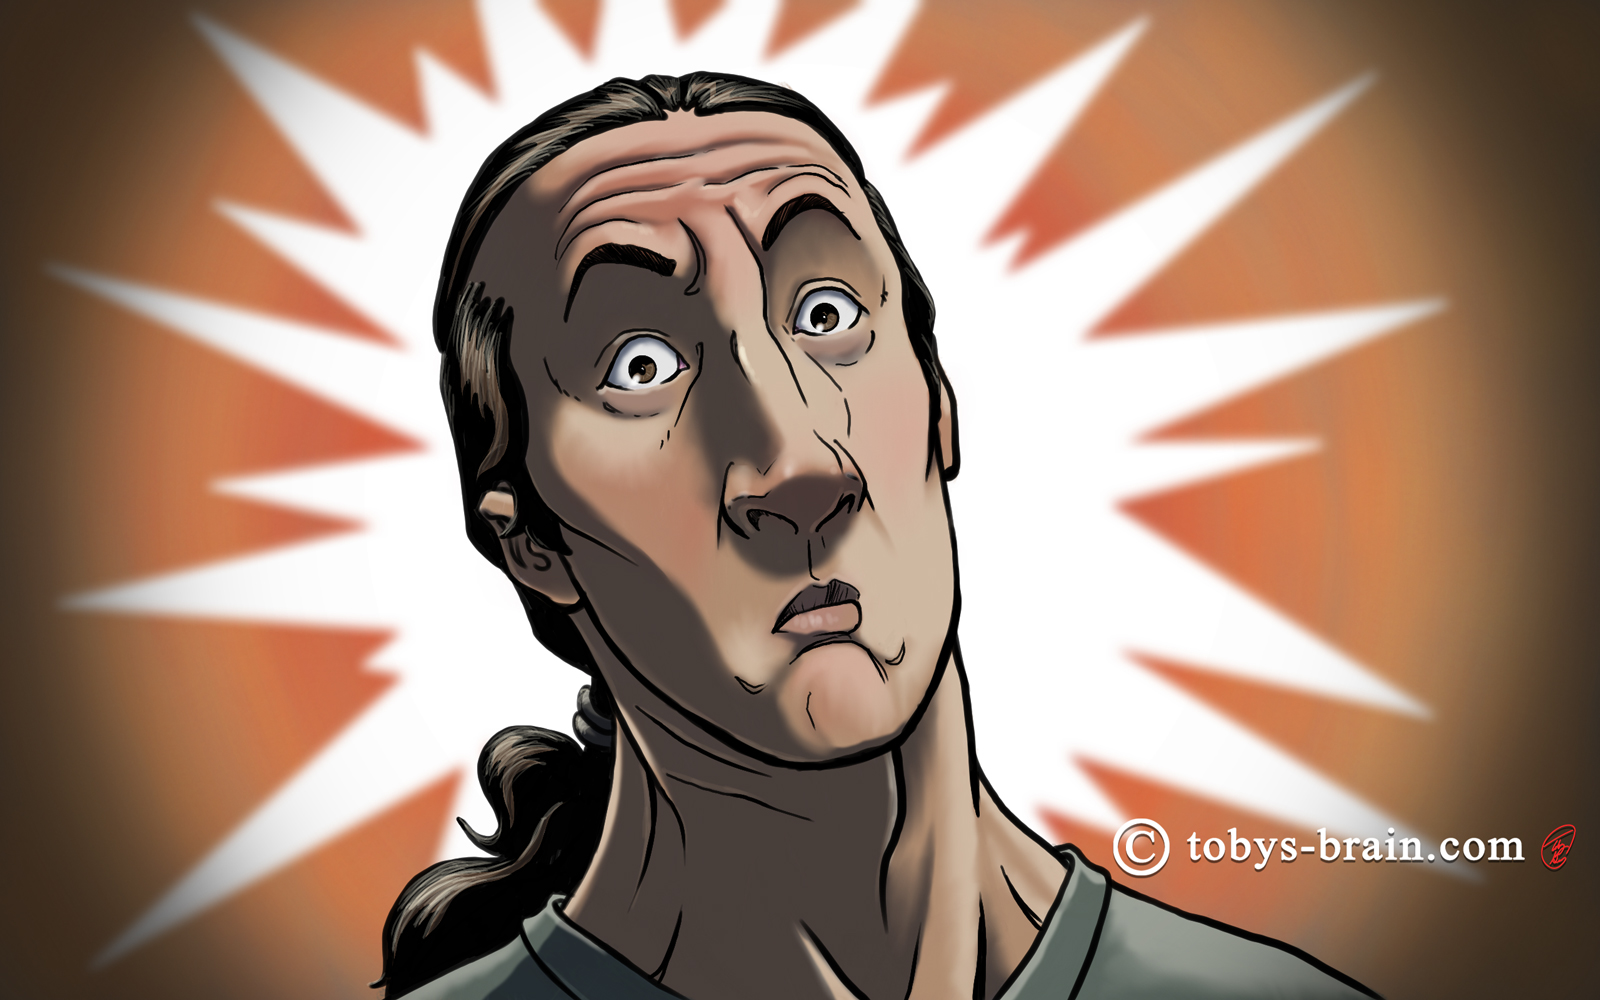 toby-gray-surprised-and-scared-toby